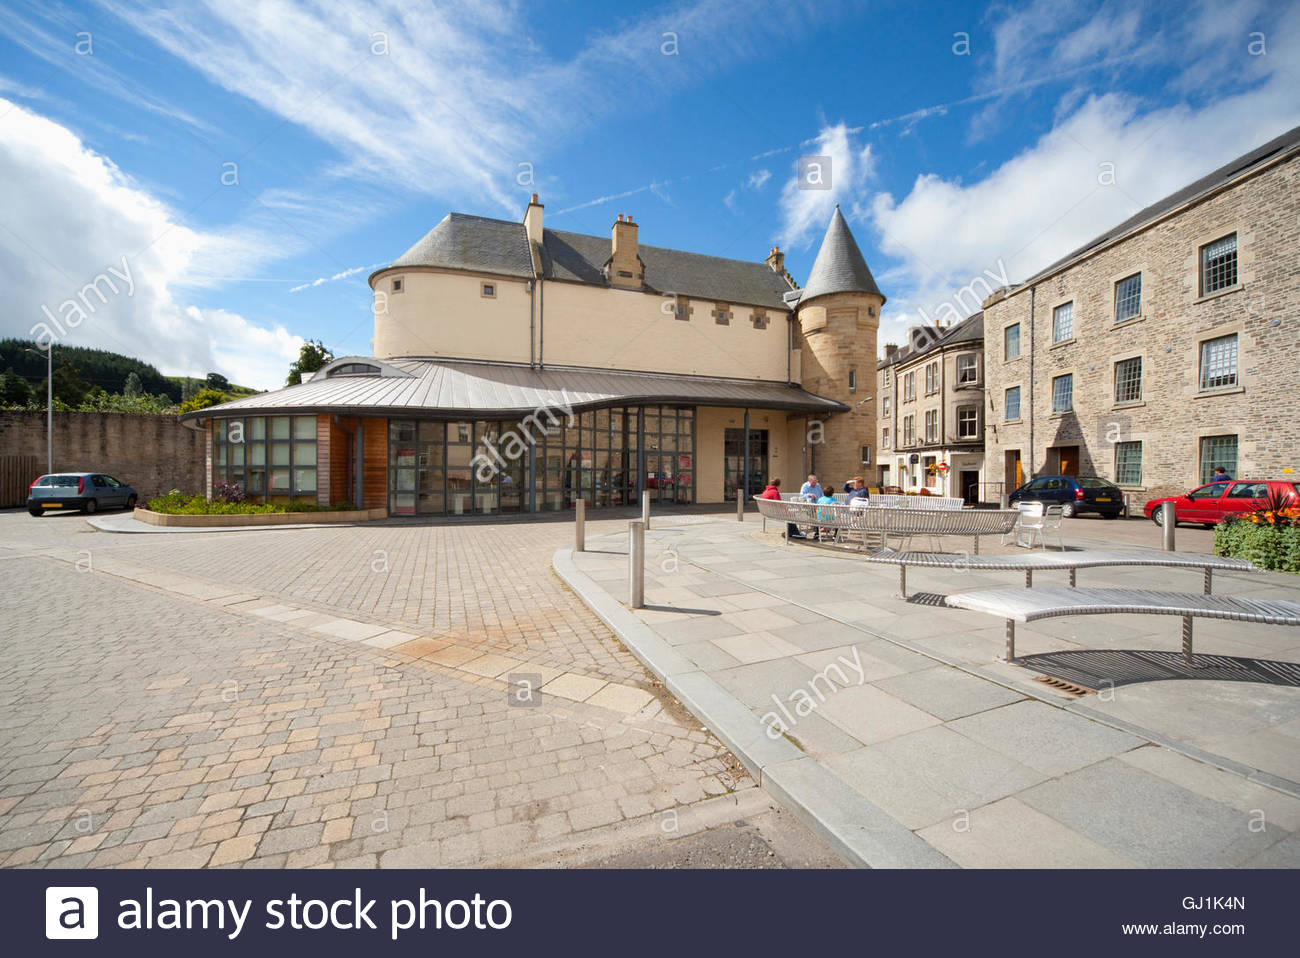 Le moyeu du patrimoine, l'archive et de l'histoire locale, Centre de Hawick, Scottish Borders, Scotland. Photo Stock